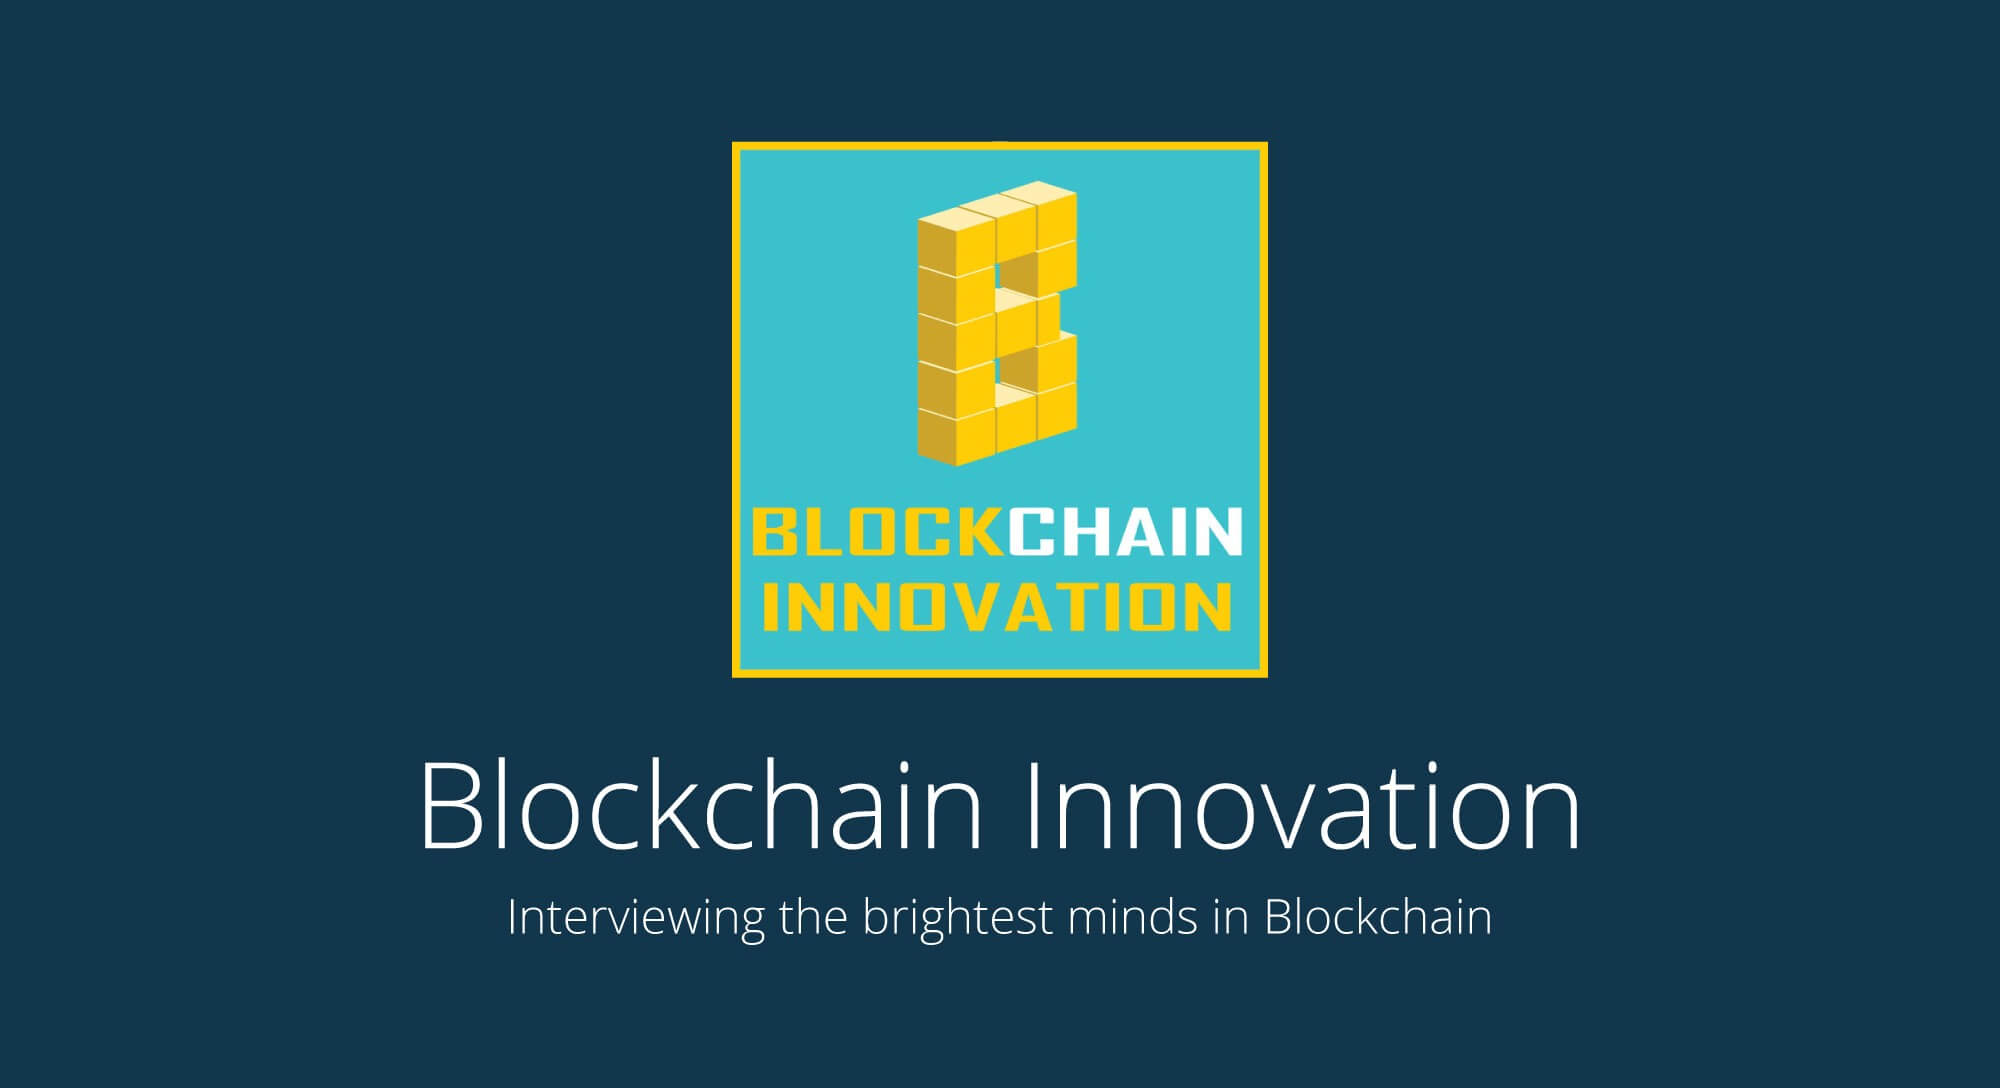 India Behind US, China in Blockchain Innovation